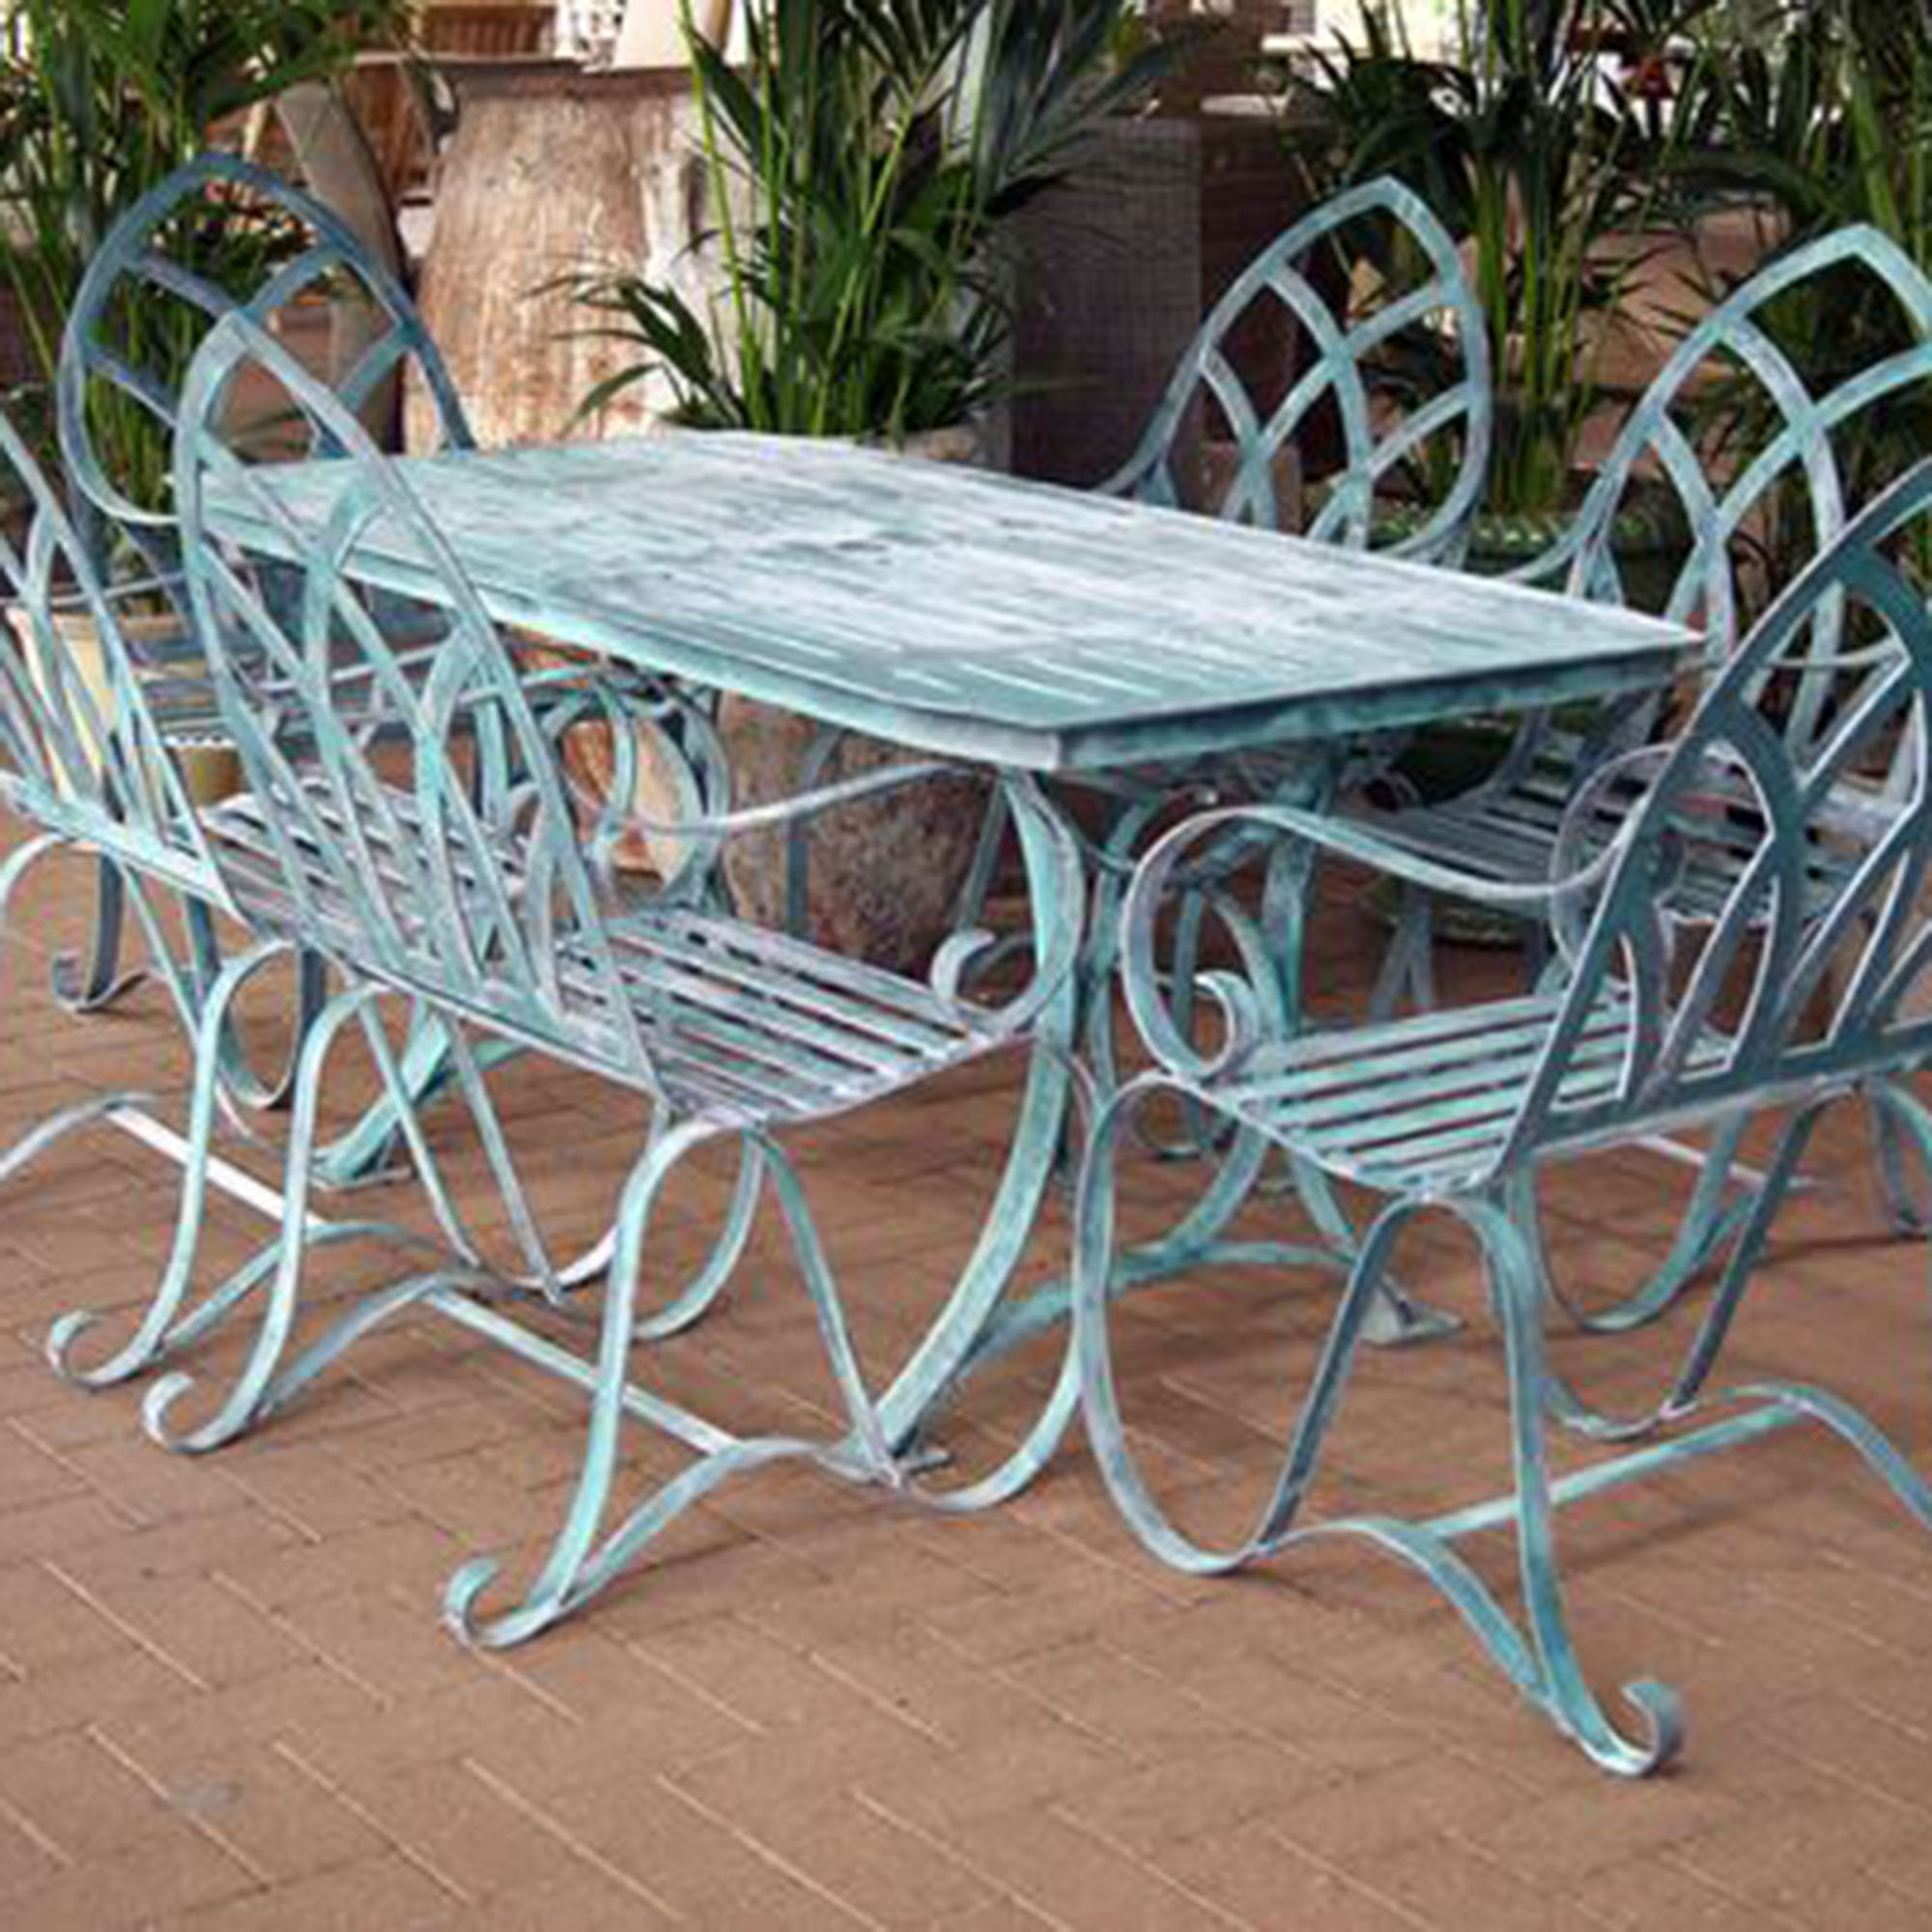 Why you should cast aluminum garden furniture